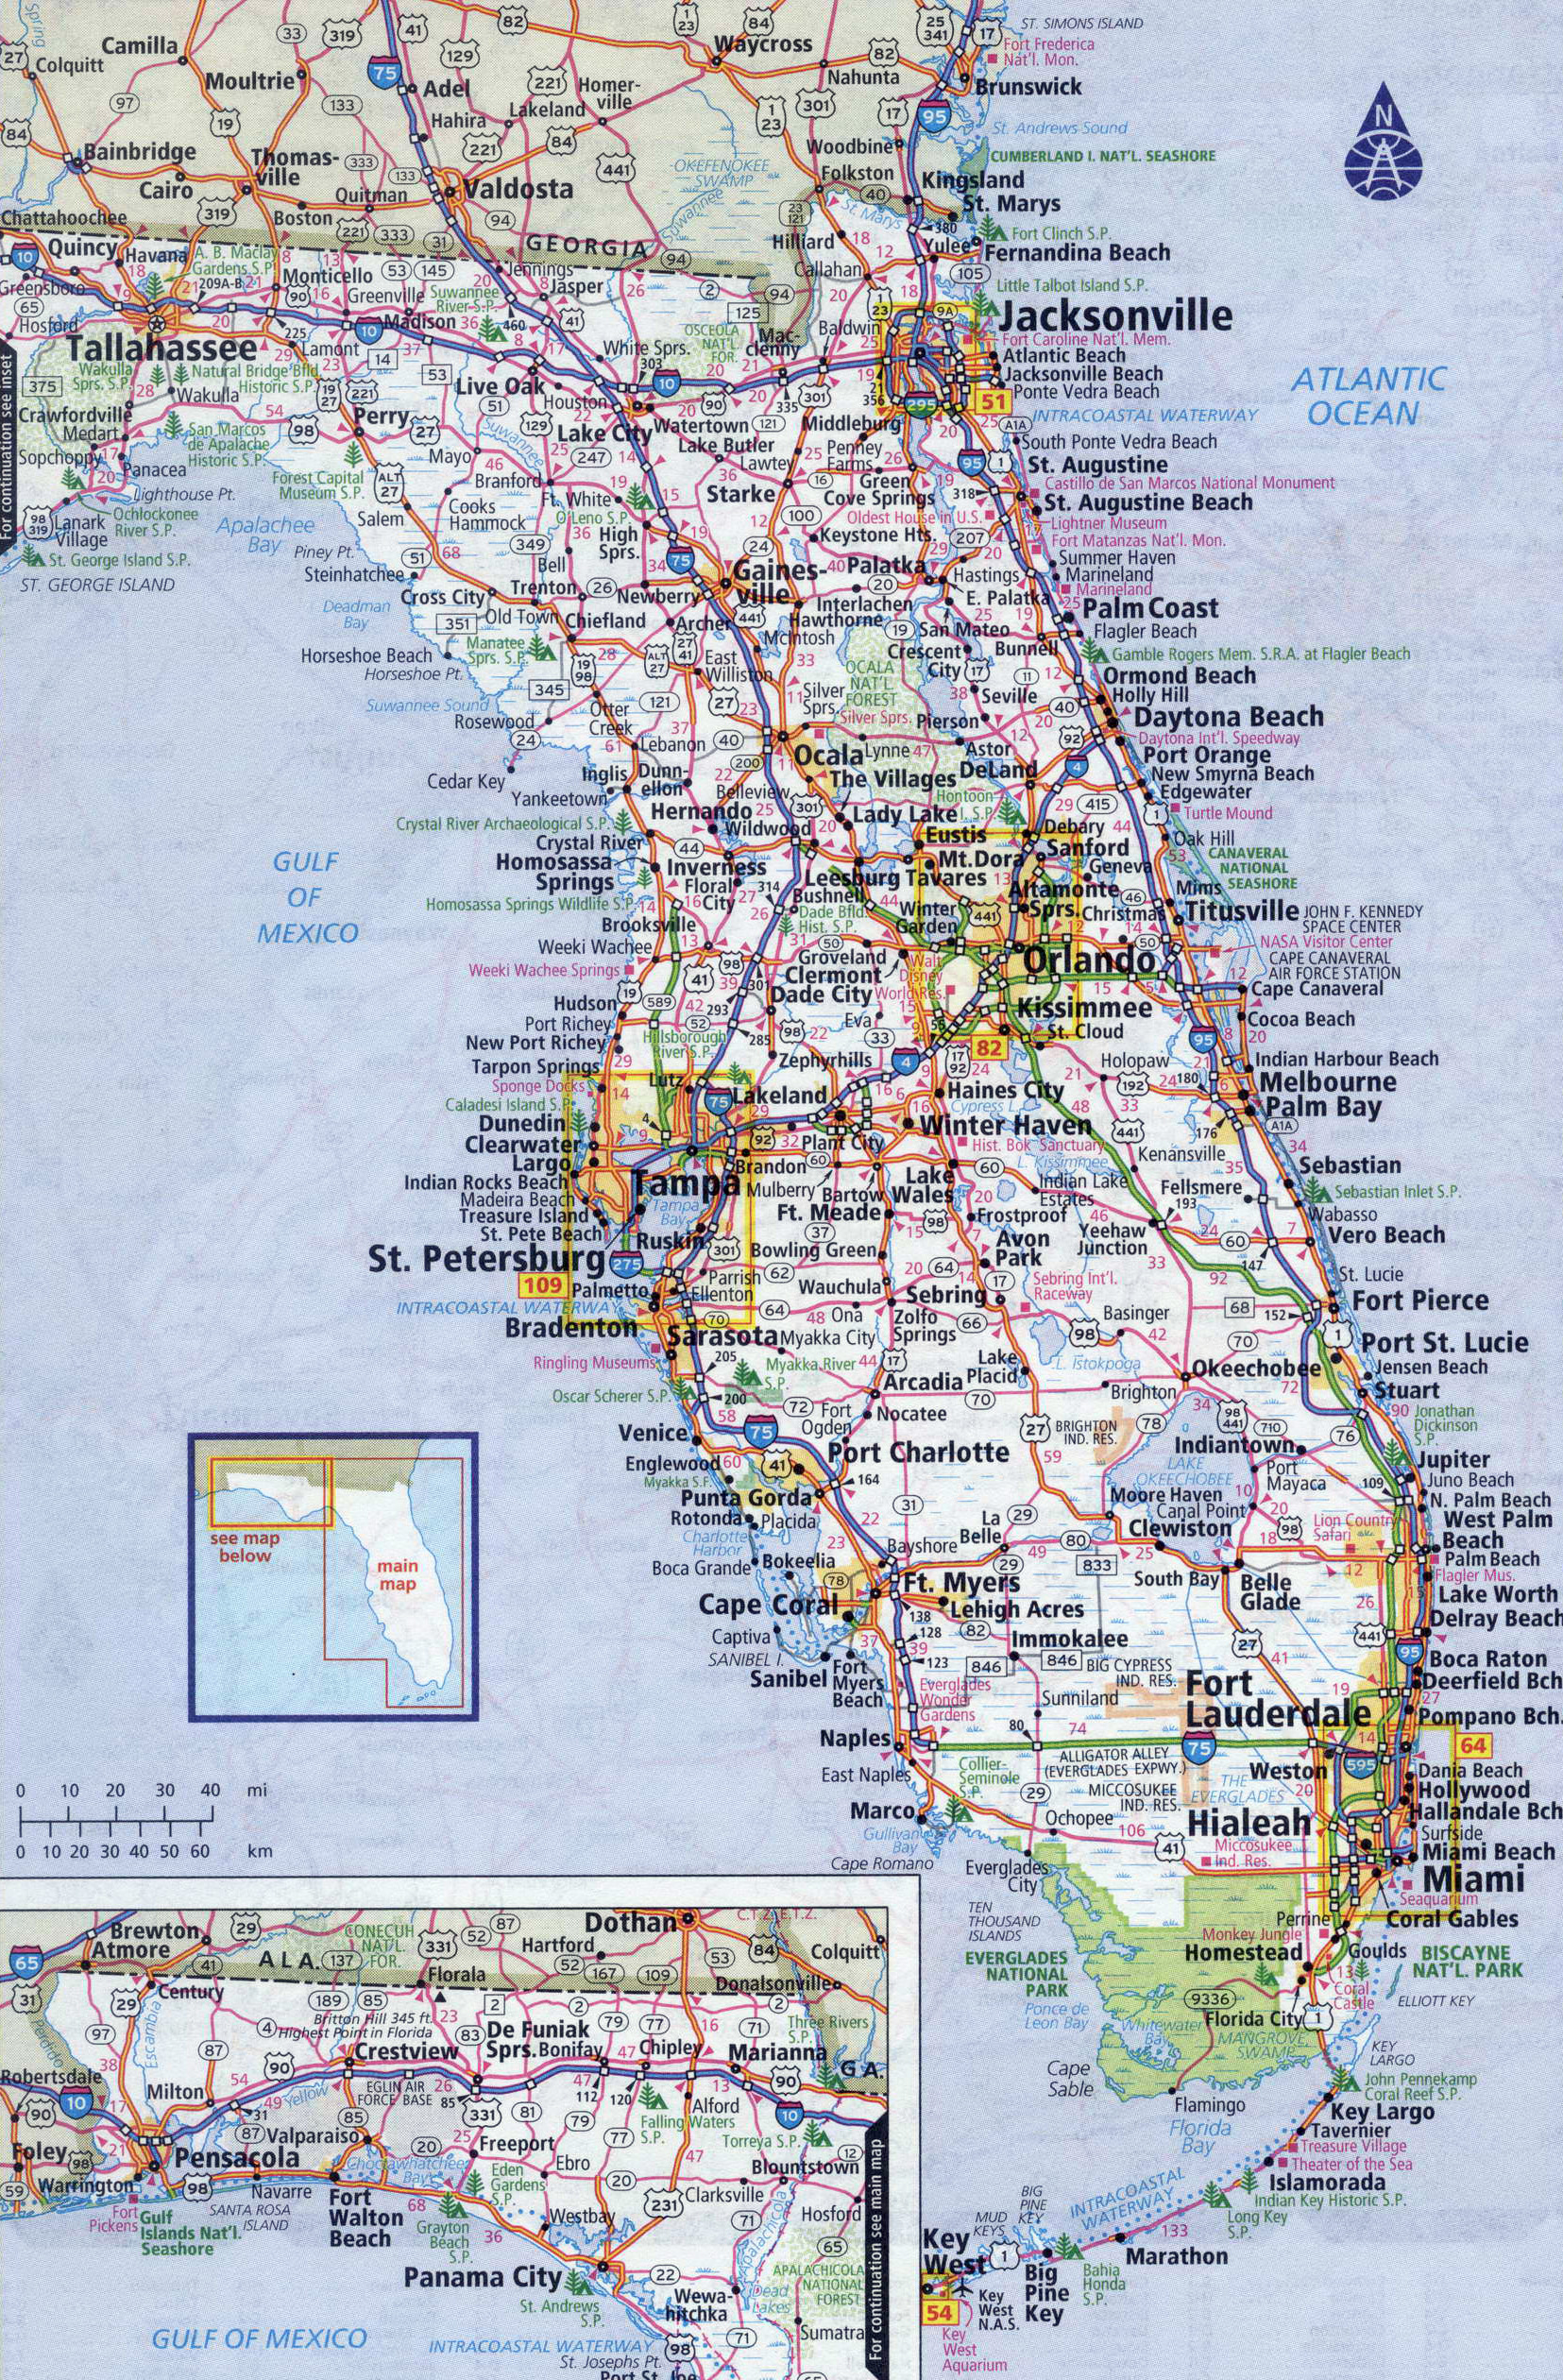 Map Of State Of Florida With Cities.Large Detailed Roads And Highways Map Of Florida State With All